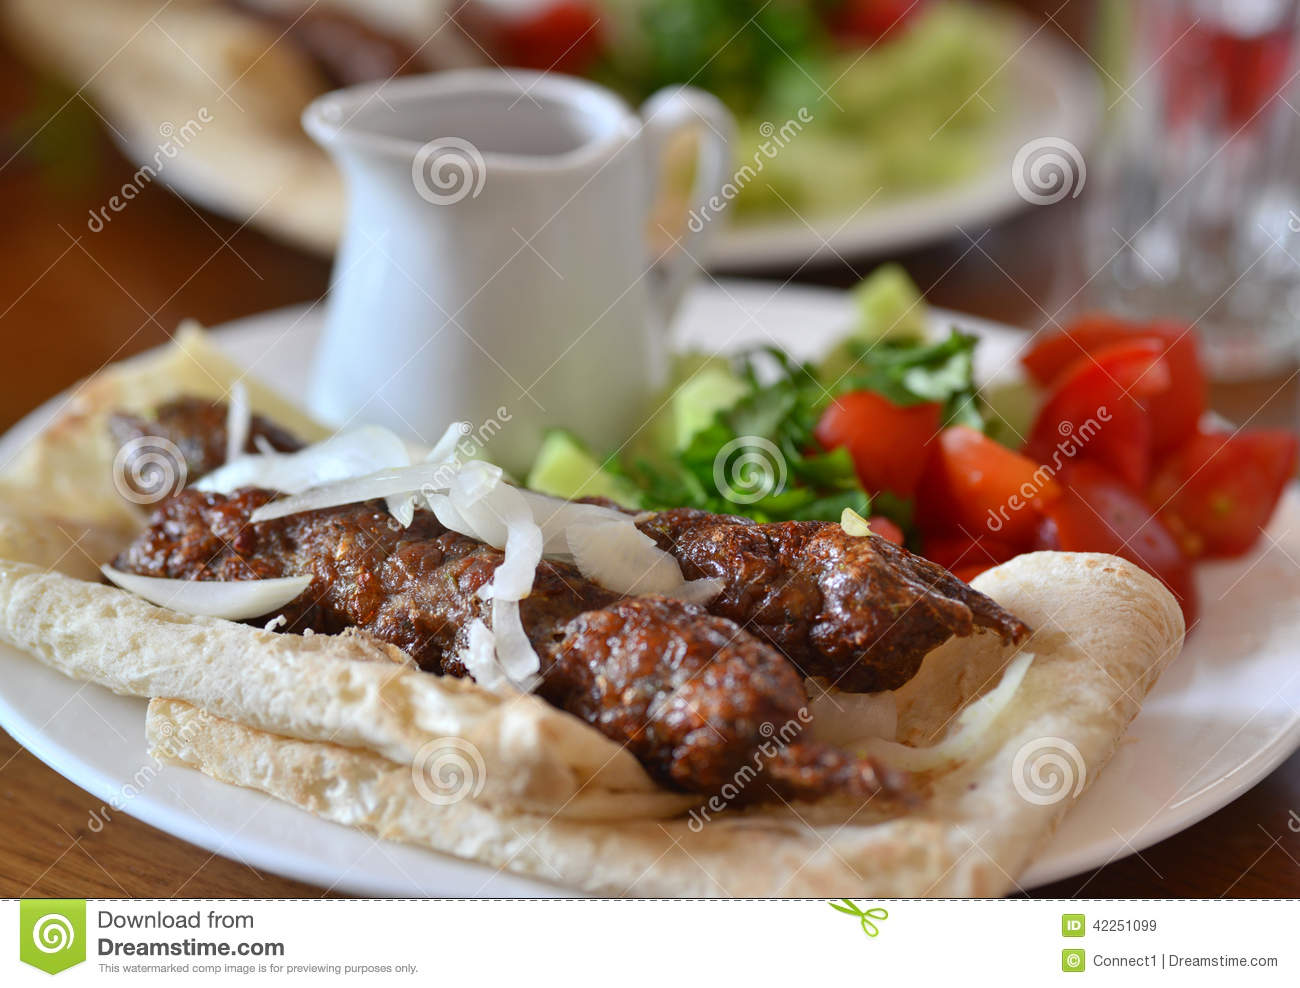 Georgian cuisine - kebab in pita bread